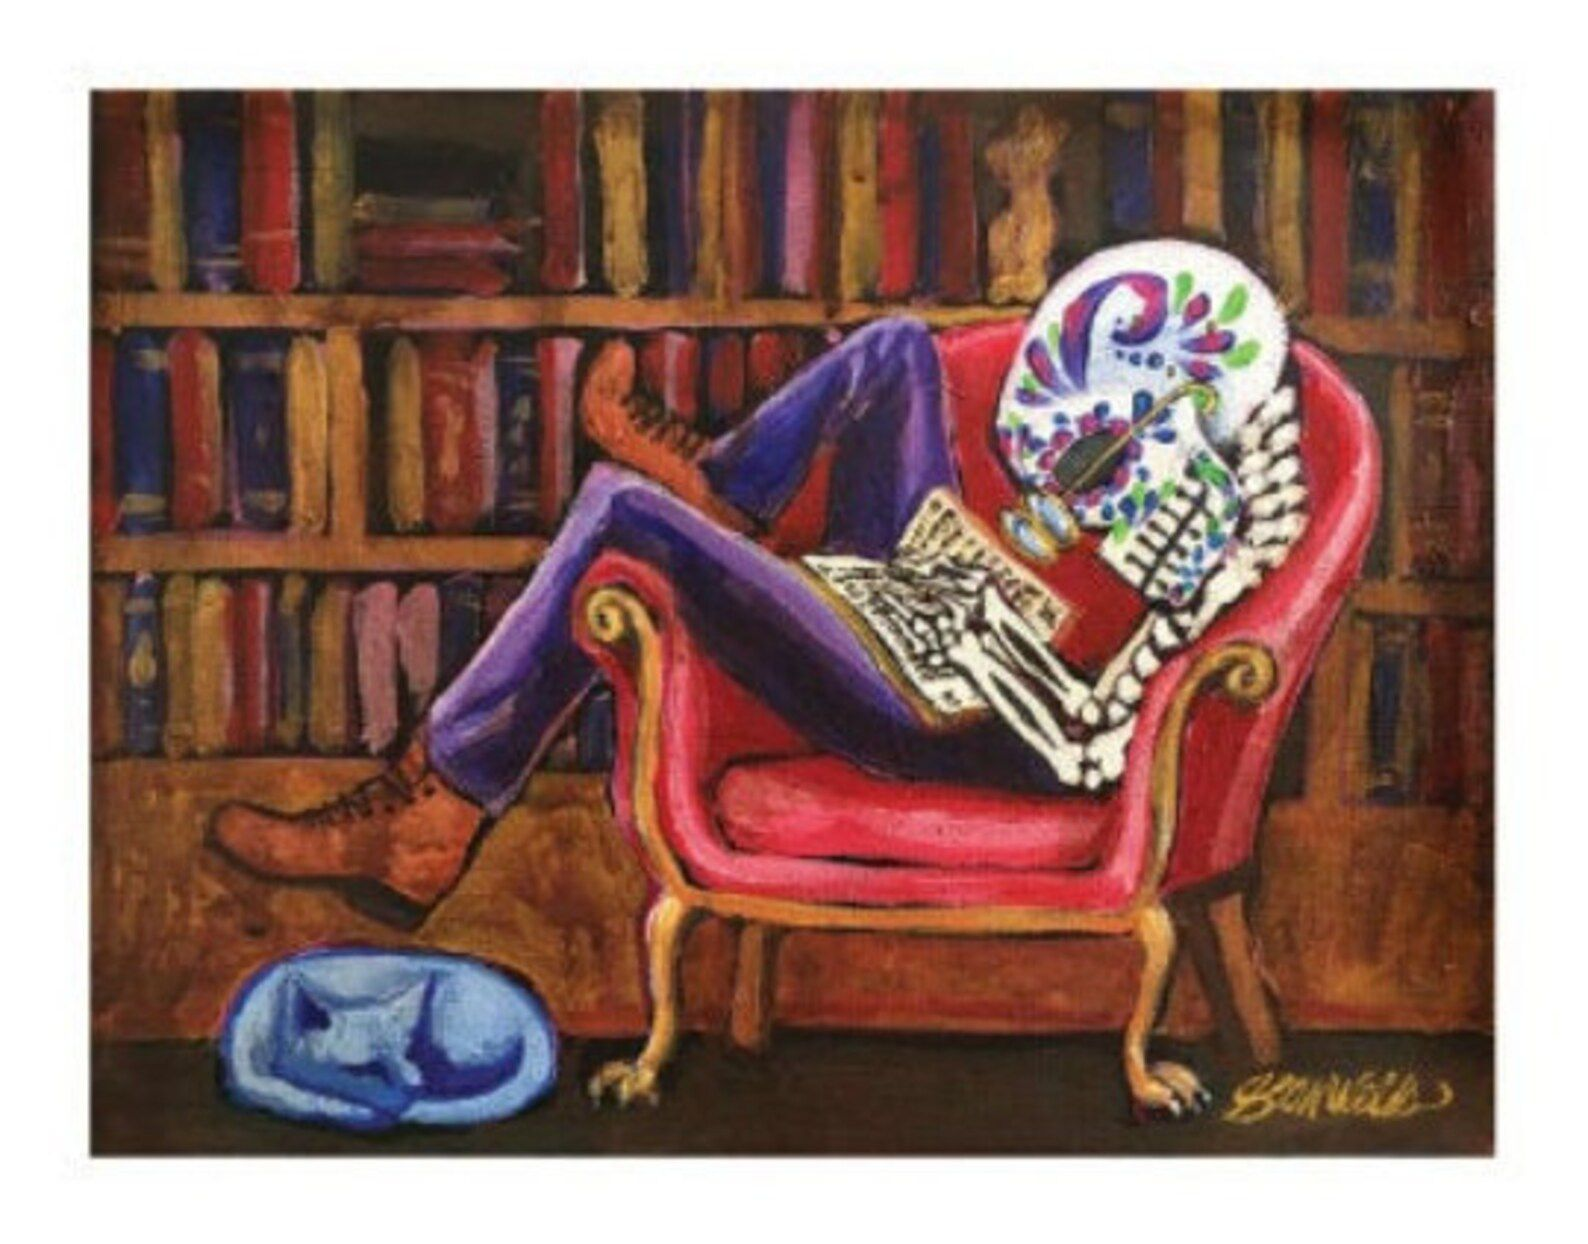 Image of a skeleton with a traditional sugar skull lounging in a red chair reading a book. There's a bookshelf behind the skeleton and a blue cat at the skeleton's feet.